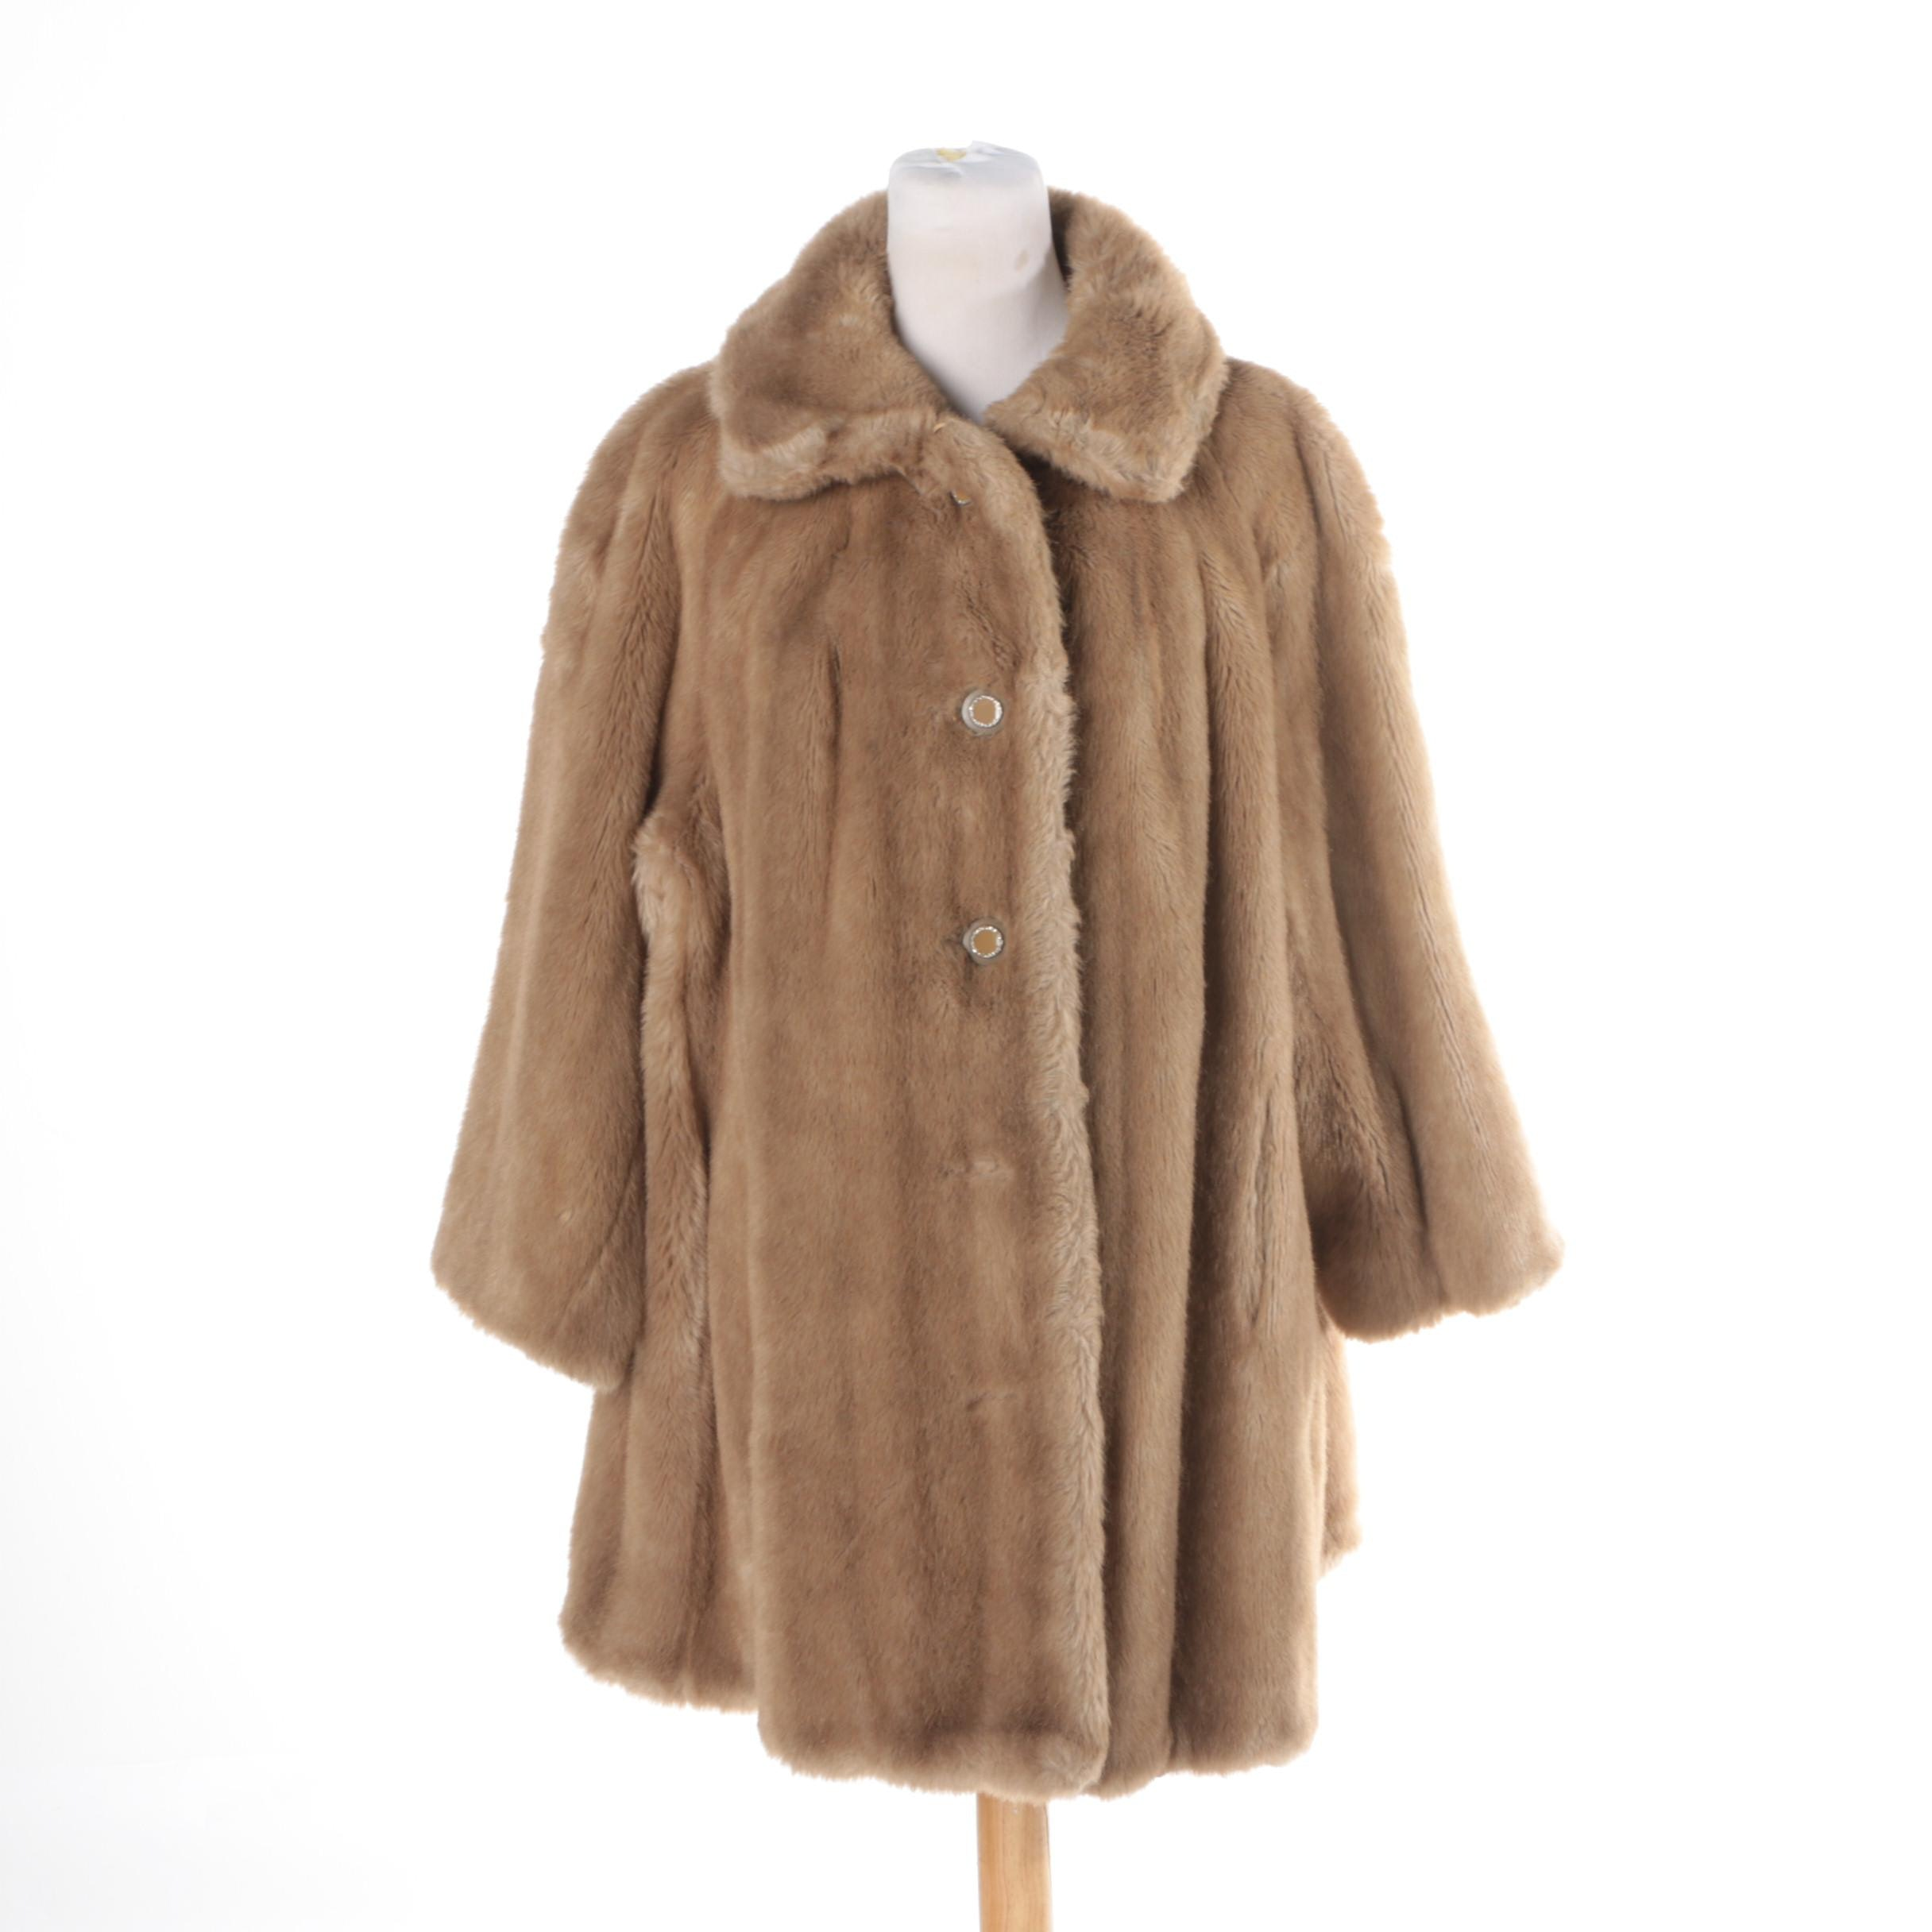 Vintage Jacobson's Faux Fur Coat